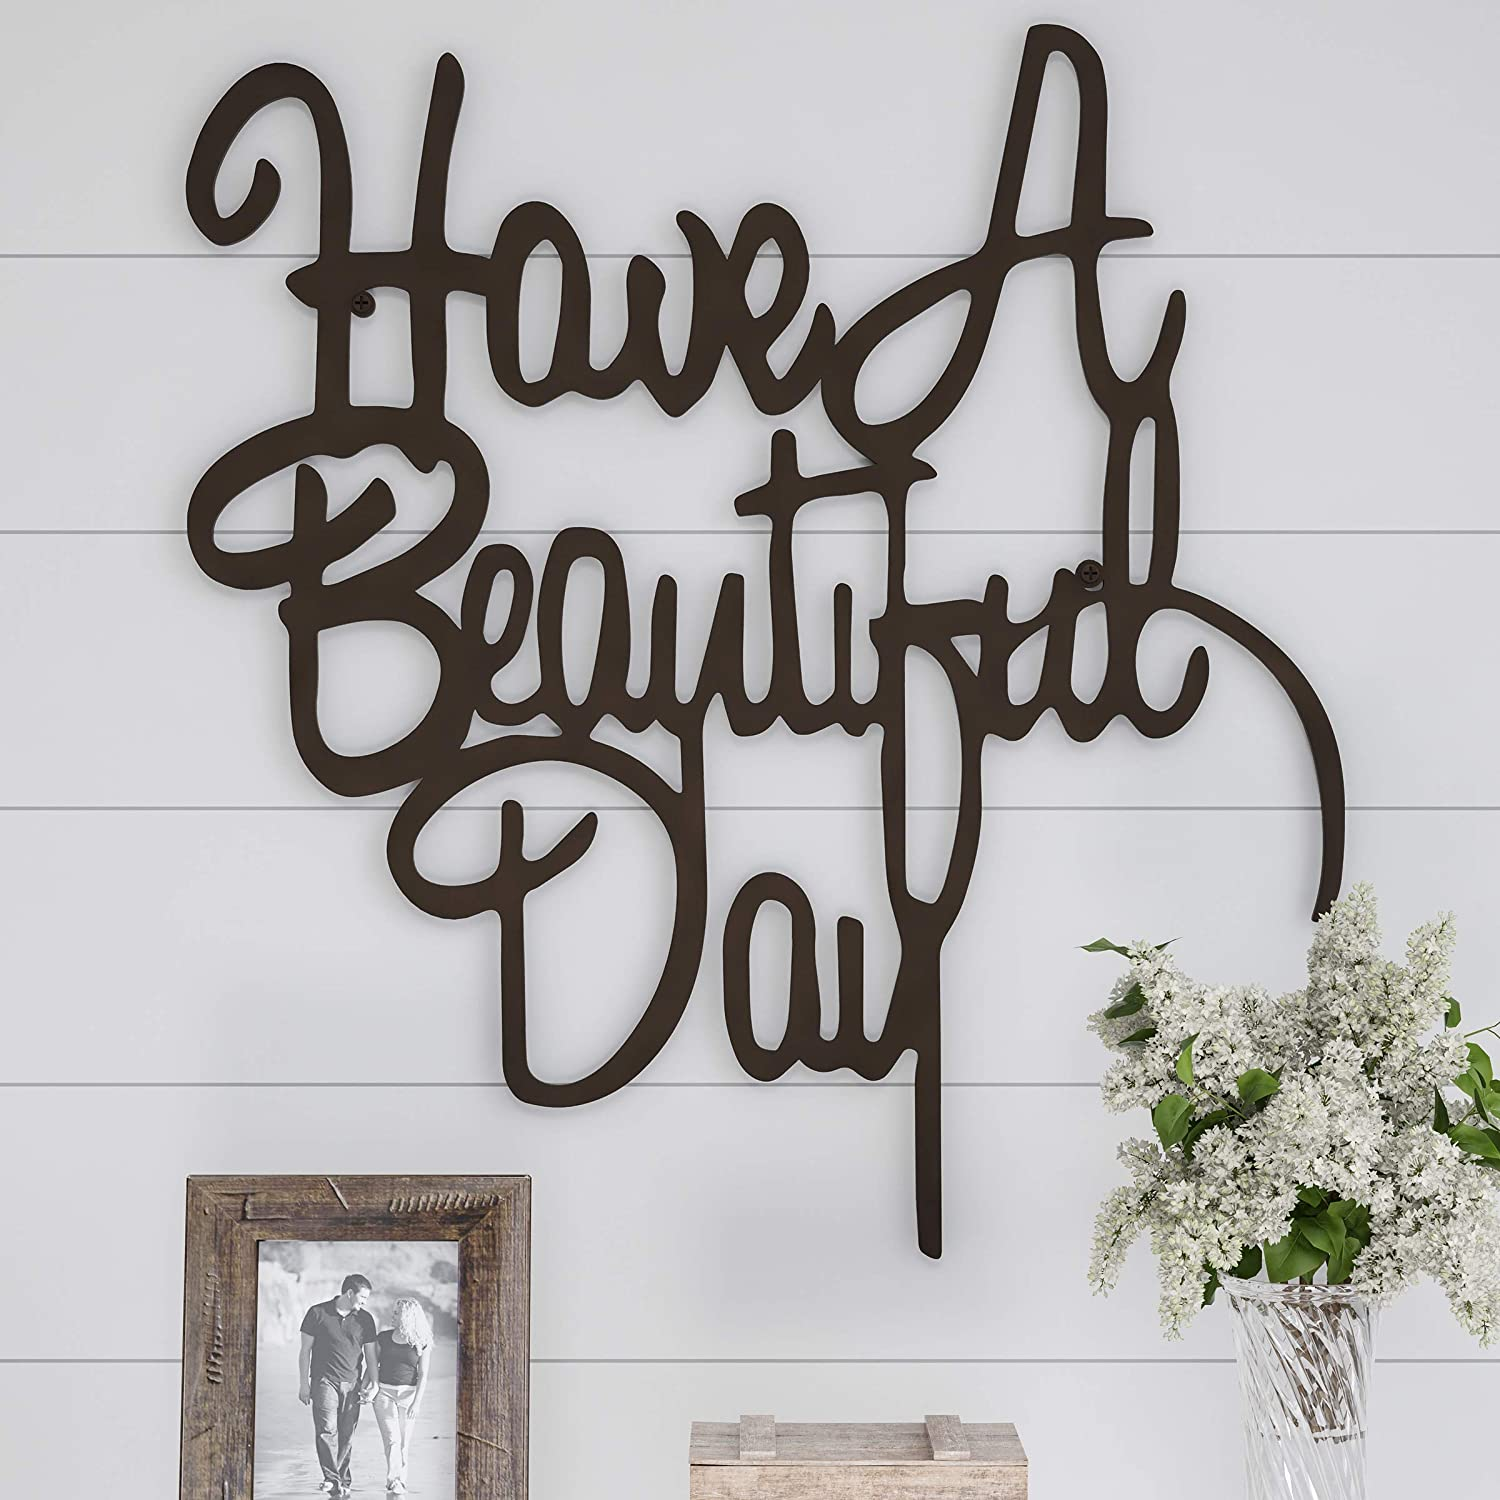 Lavish Home Metal Cutout-Have a Beautiful Day Wall Sign-3D Word Art Home Accent Decor-Perfect Modern Rustic or Vintage Farmhouse Style